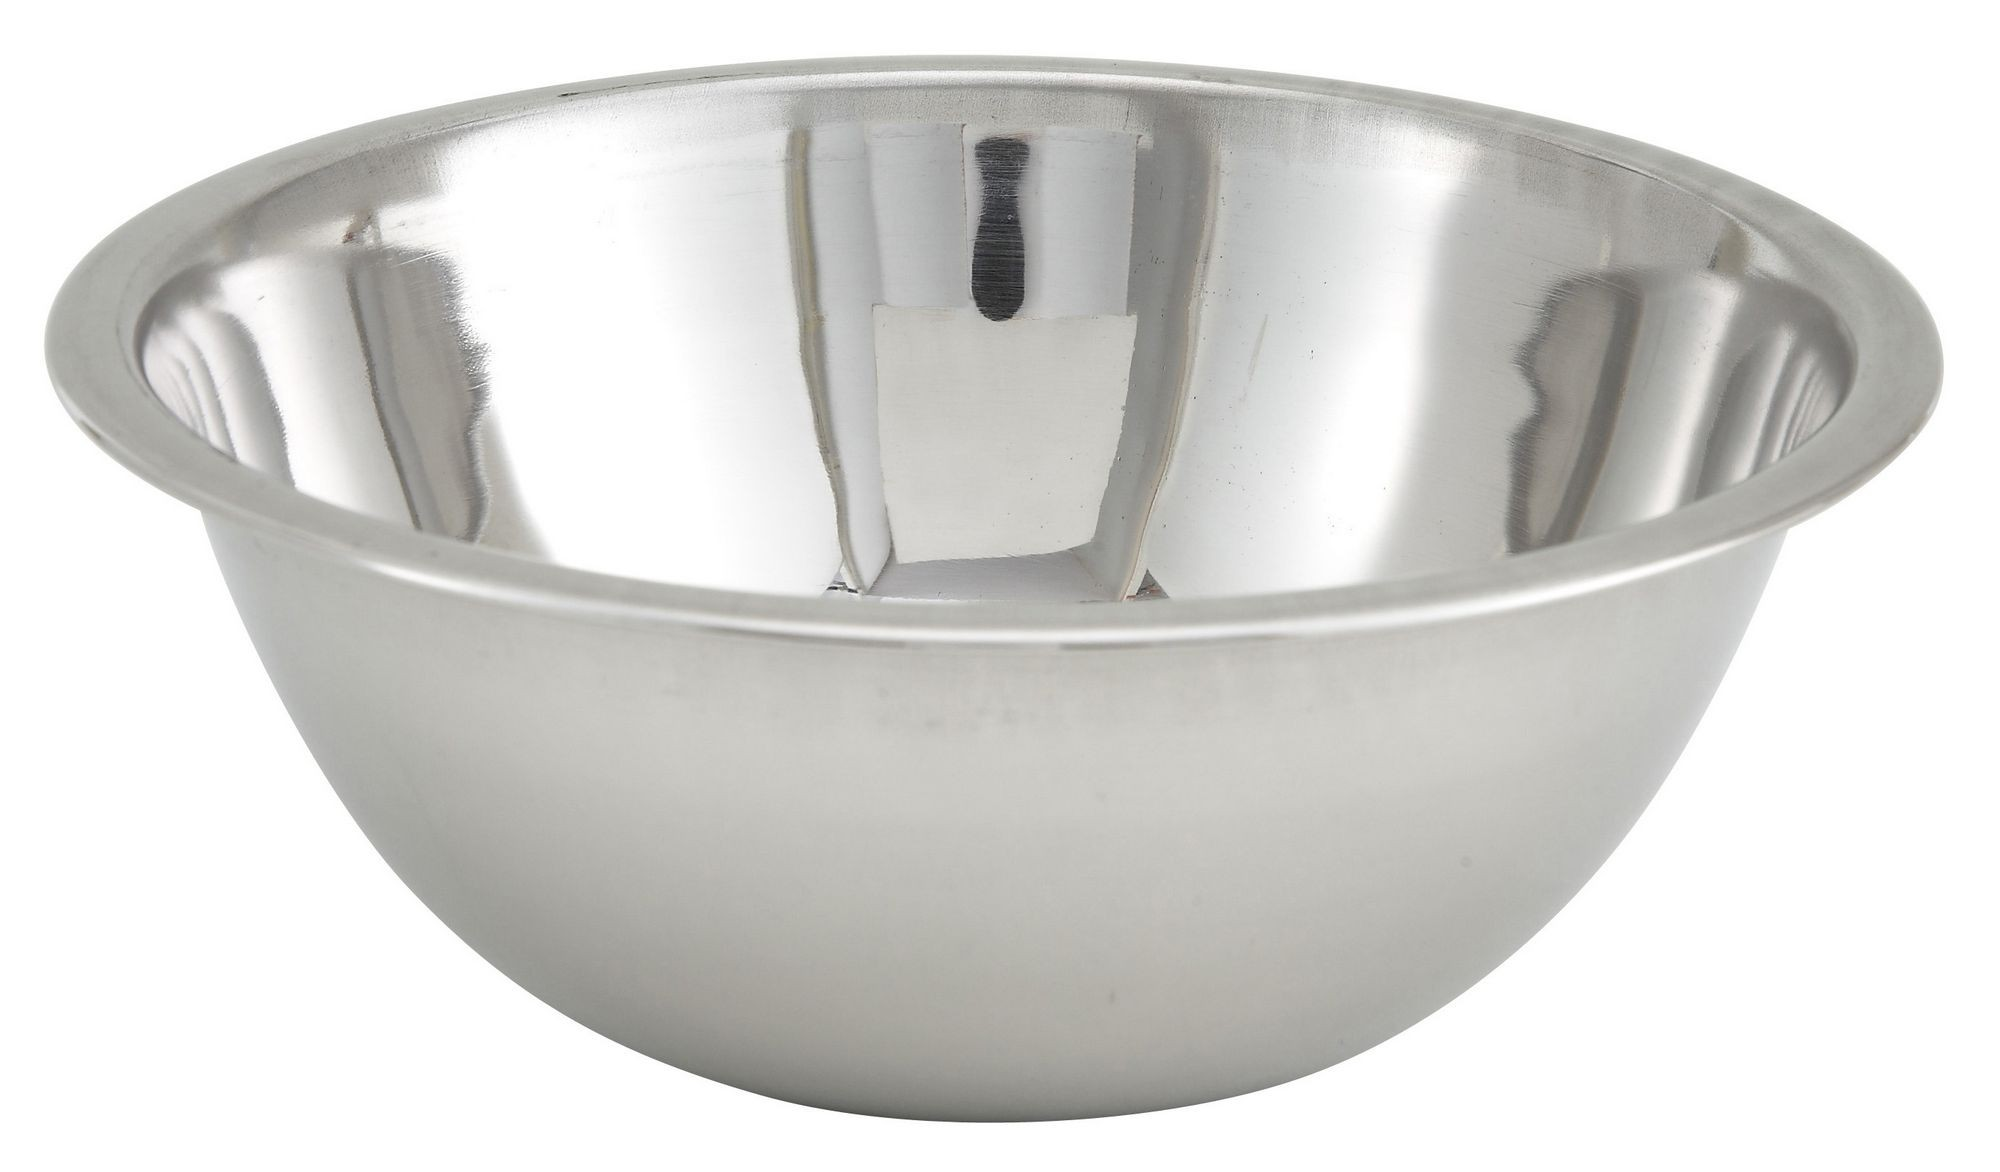 Winco MXBT-400Q Stainless Steel All-Purpose Mixing Bowl 4 Qt.